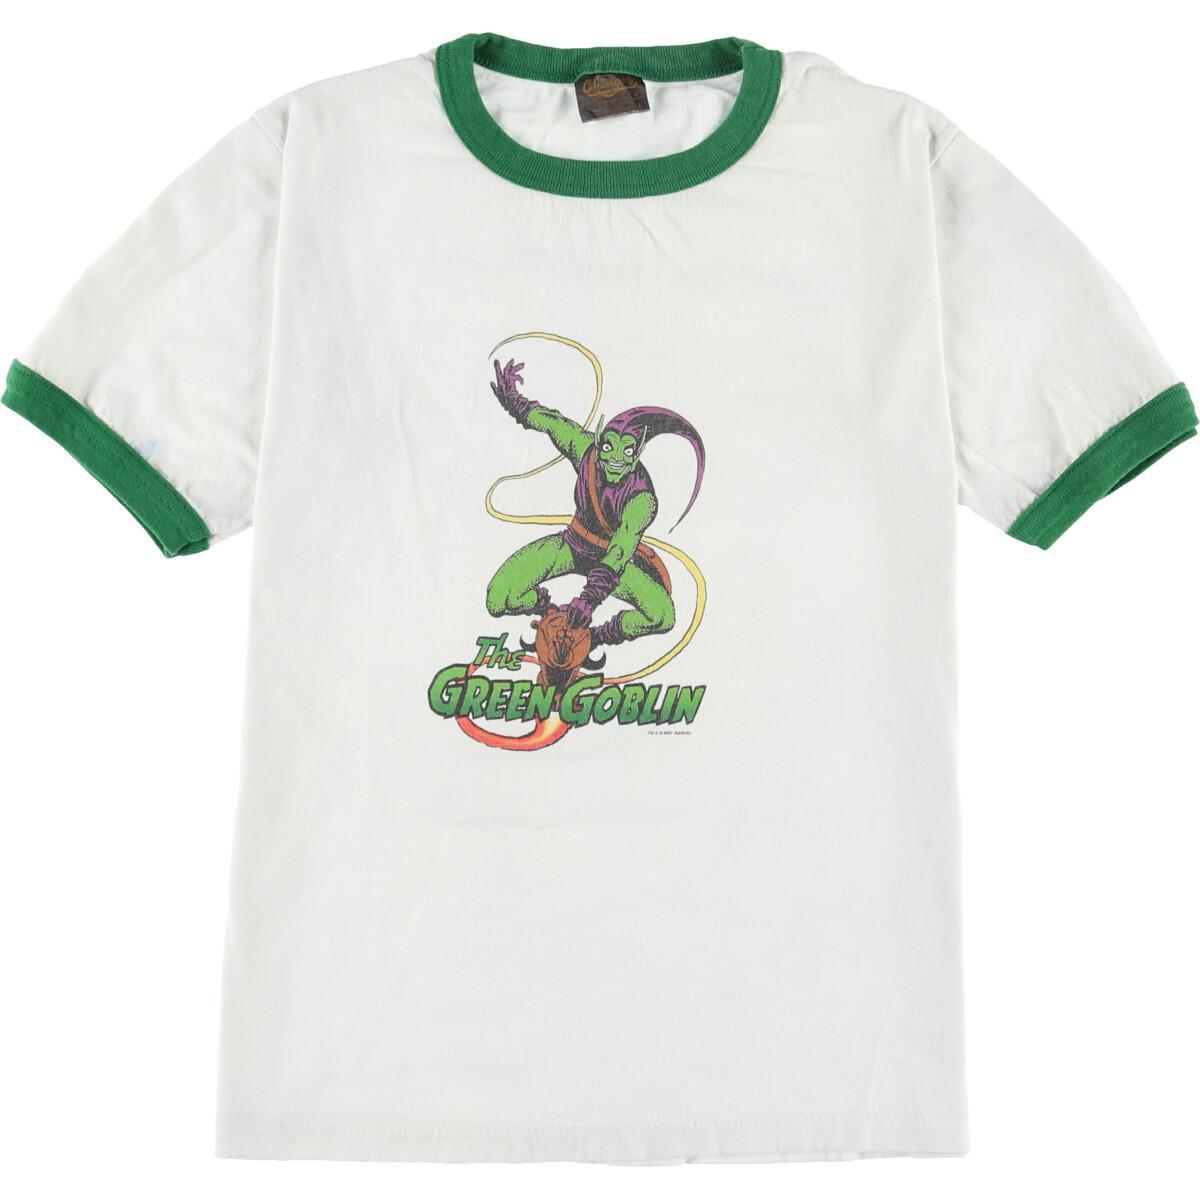 トップス, Tシャツ・カットソー Changes SPIDER-MAN THE GREEN GOBLIN T T USA M eaa055562 200709SS2009